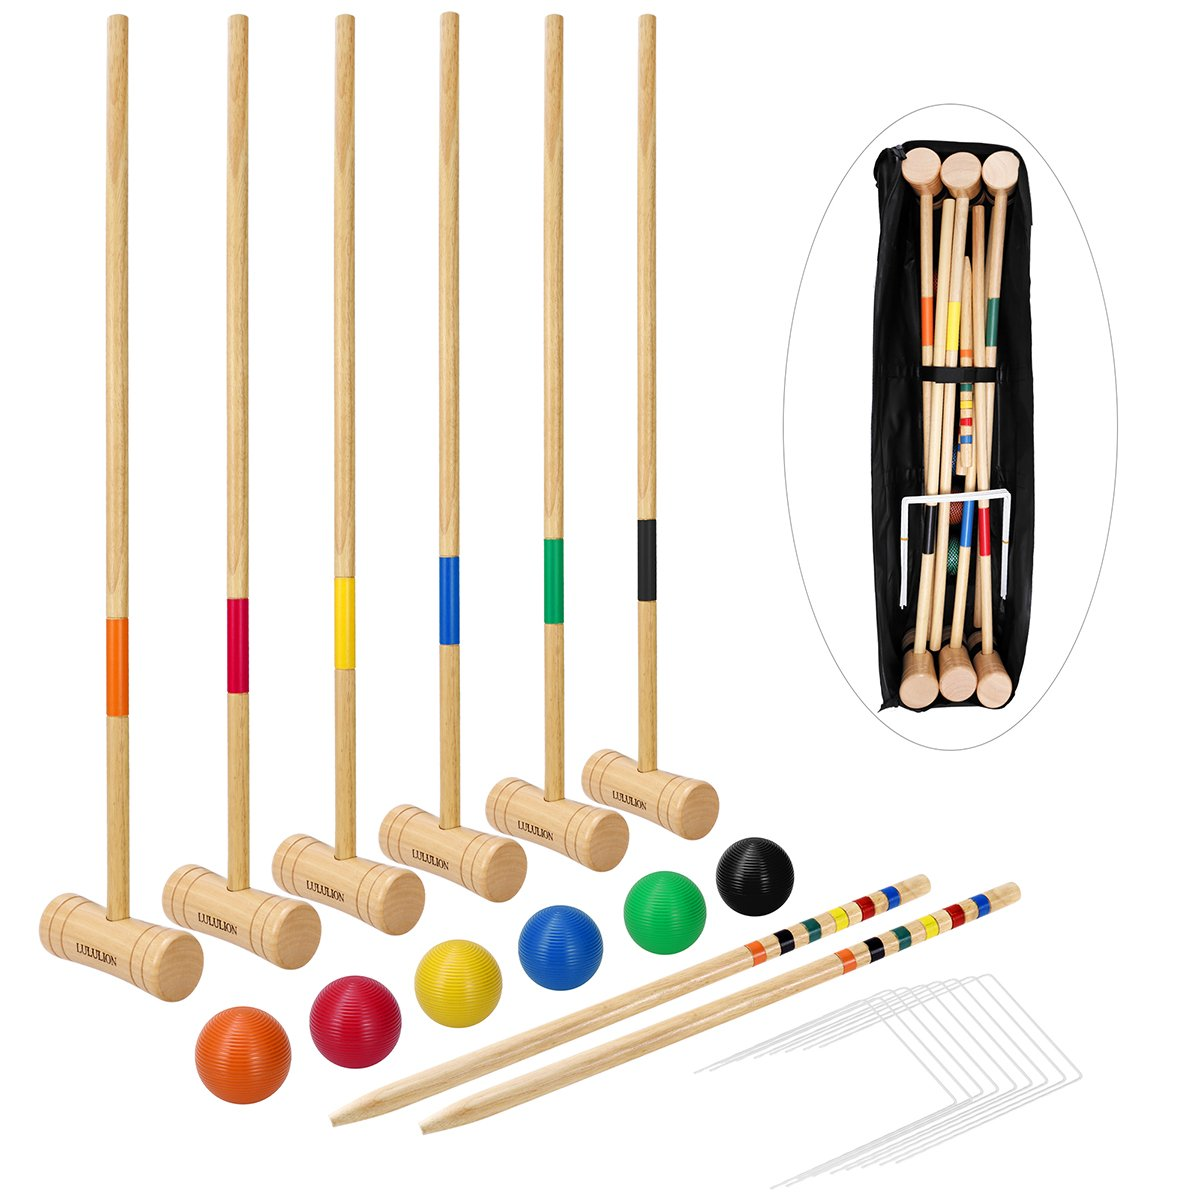 LULULION Croquet Set for Kids and Adults - Includes Extra Large Carrying Bag - 6 Players, Durable Hardwood Material, Deluxe Croquet Game Set for Family, 31-Inch by LULULION